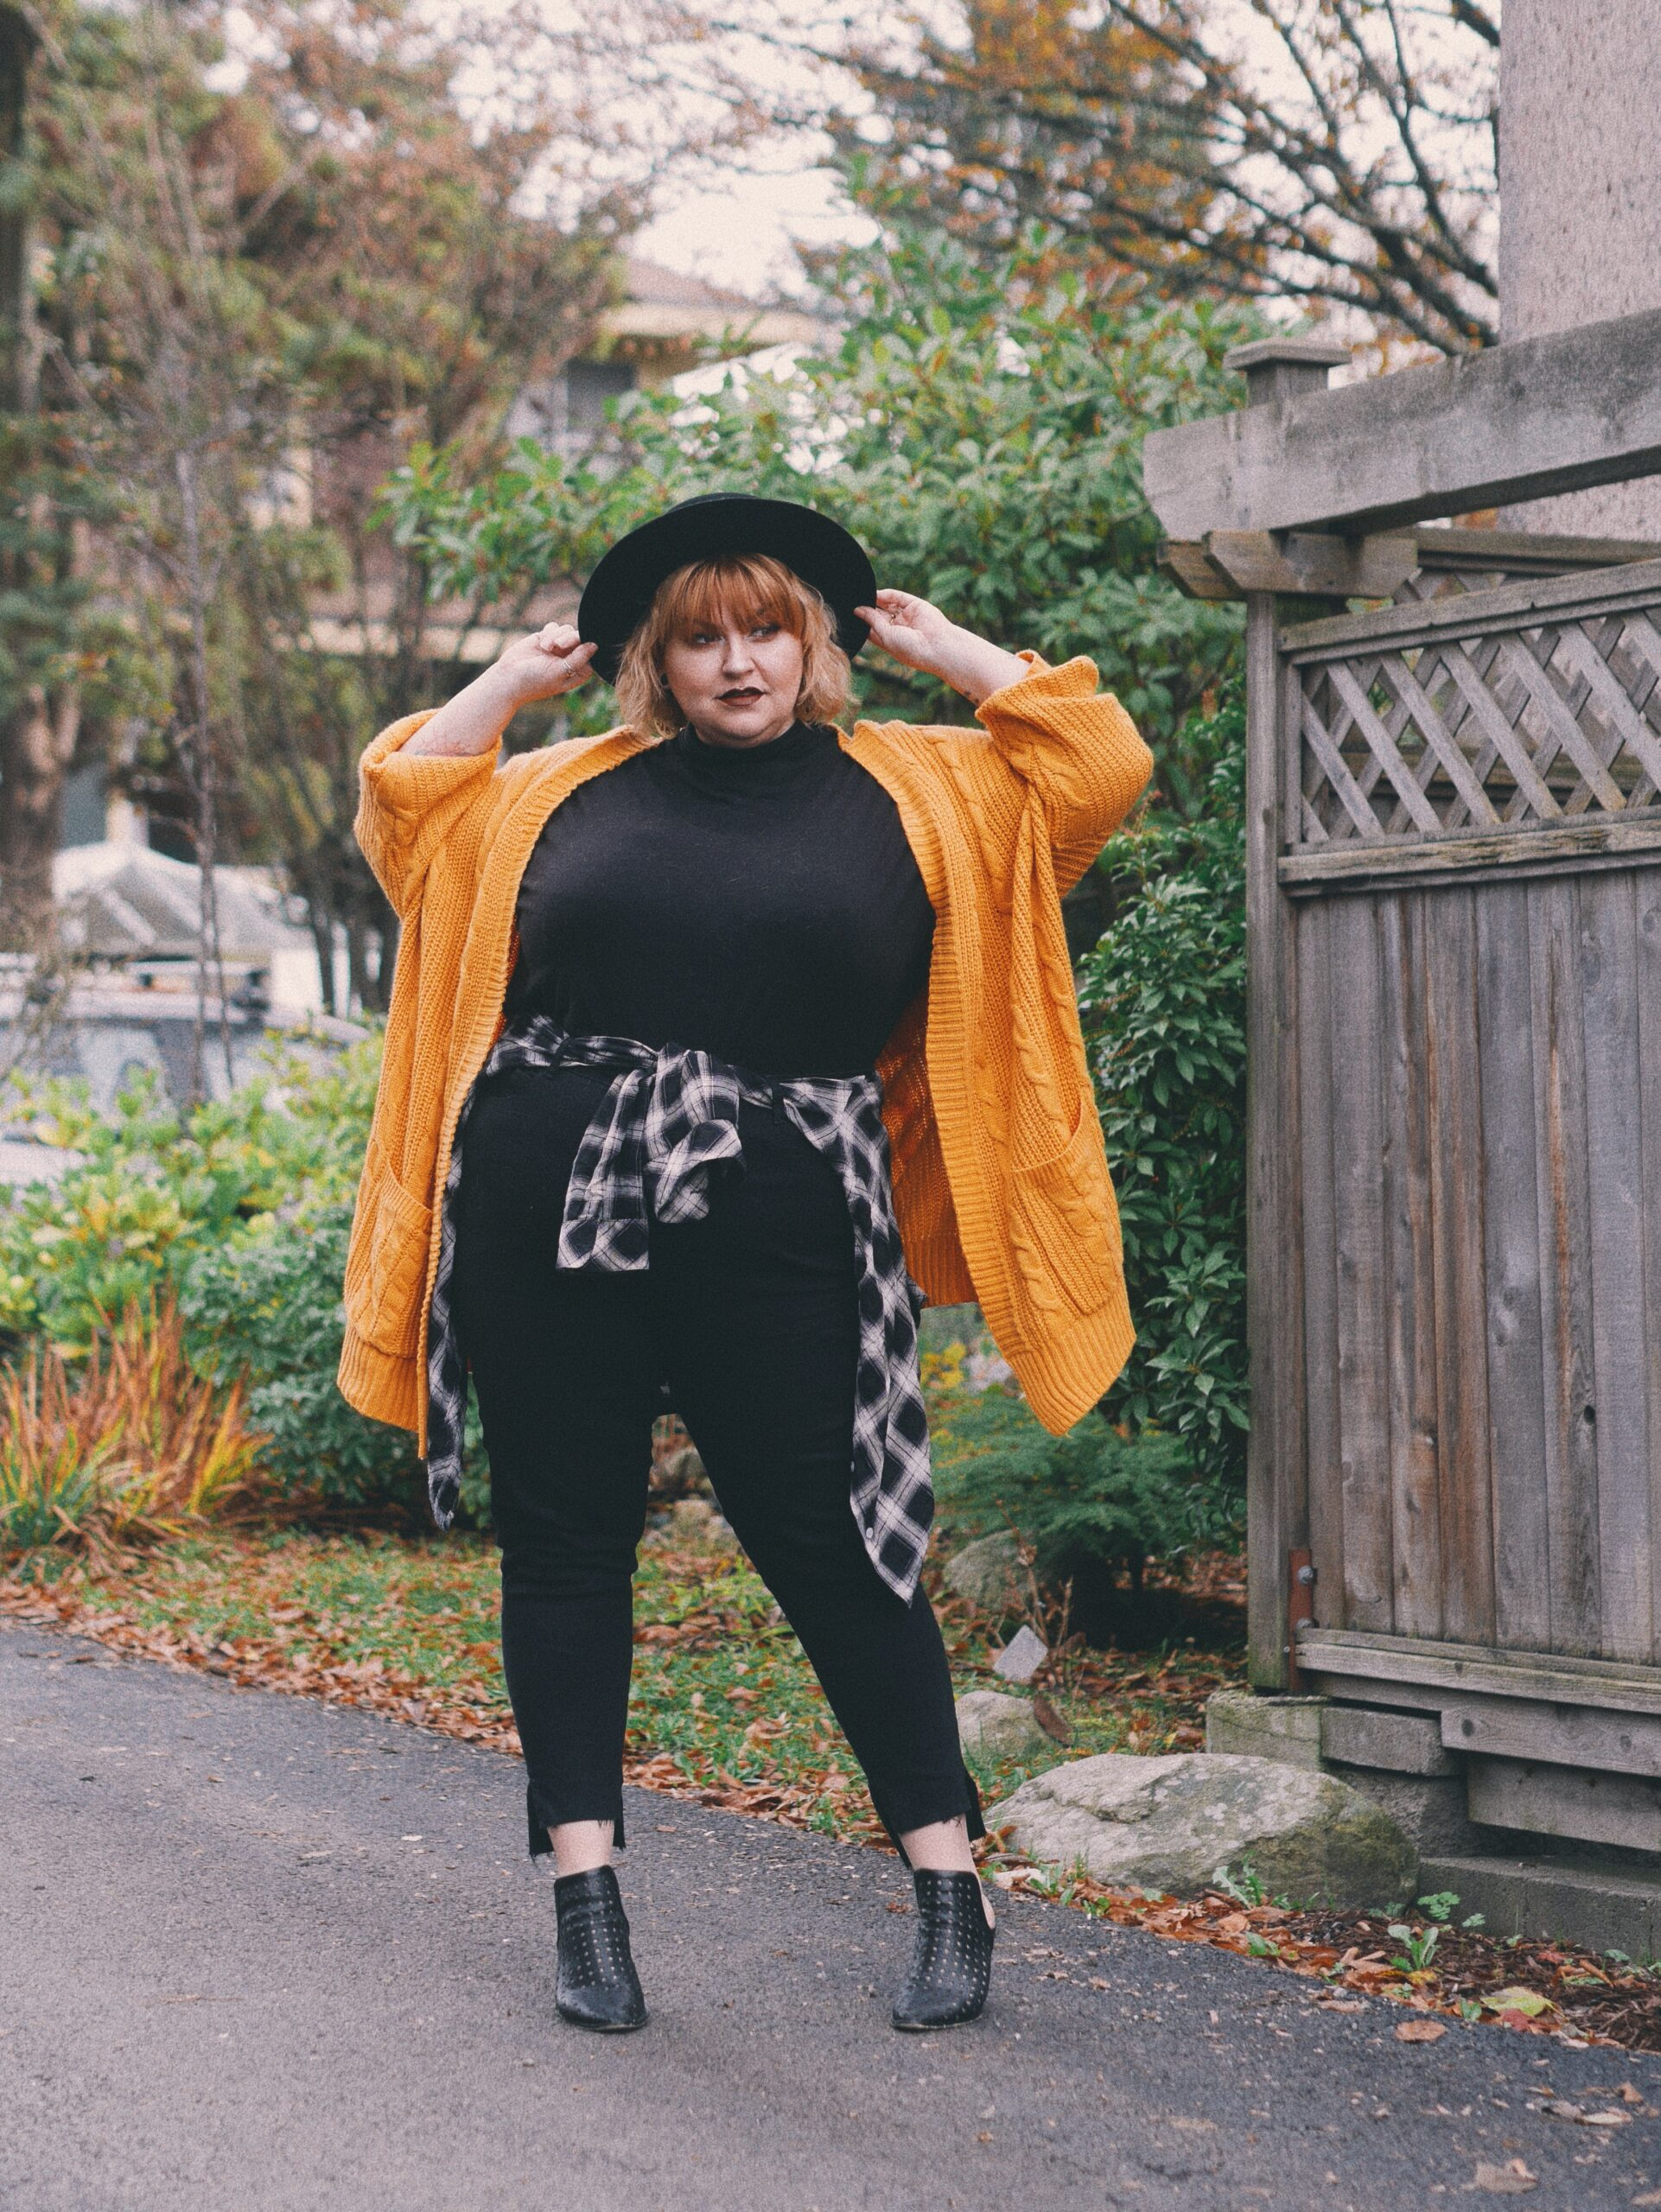 Margot Meanie poses in plus size outfit featuring a yellow sweater and black outfit